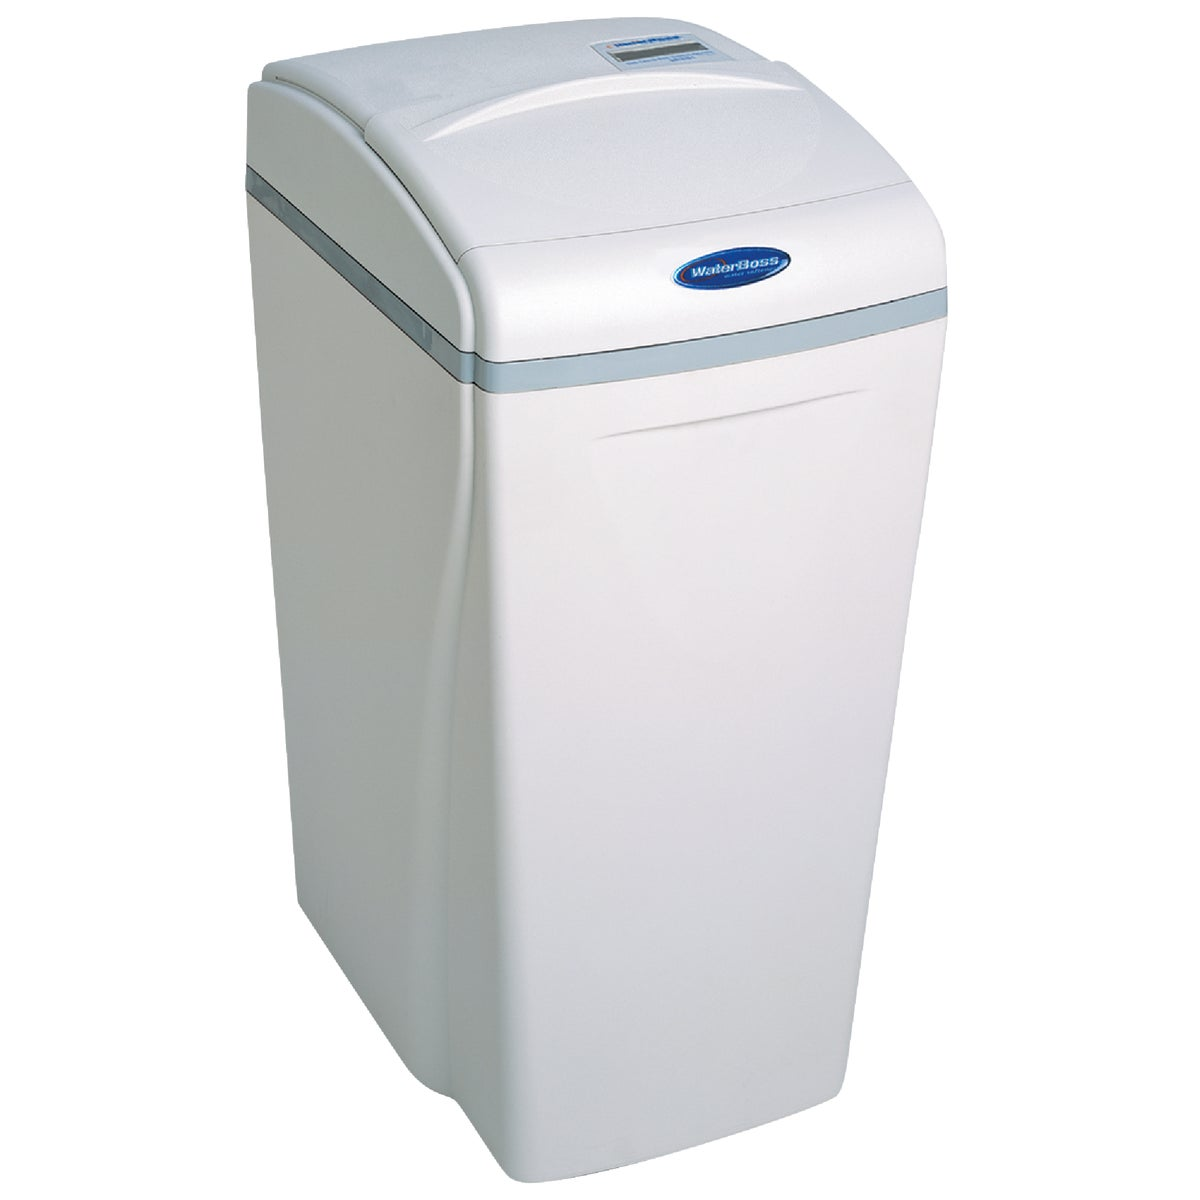 CITY BOSS WATER SOFTENER - 950 by Water Boss